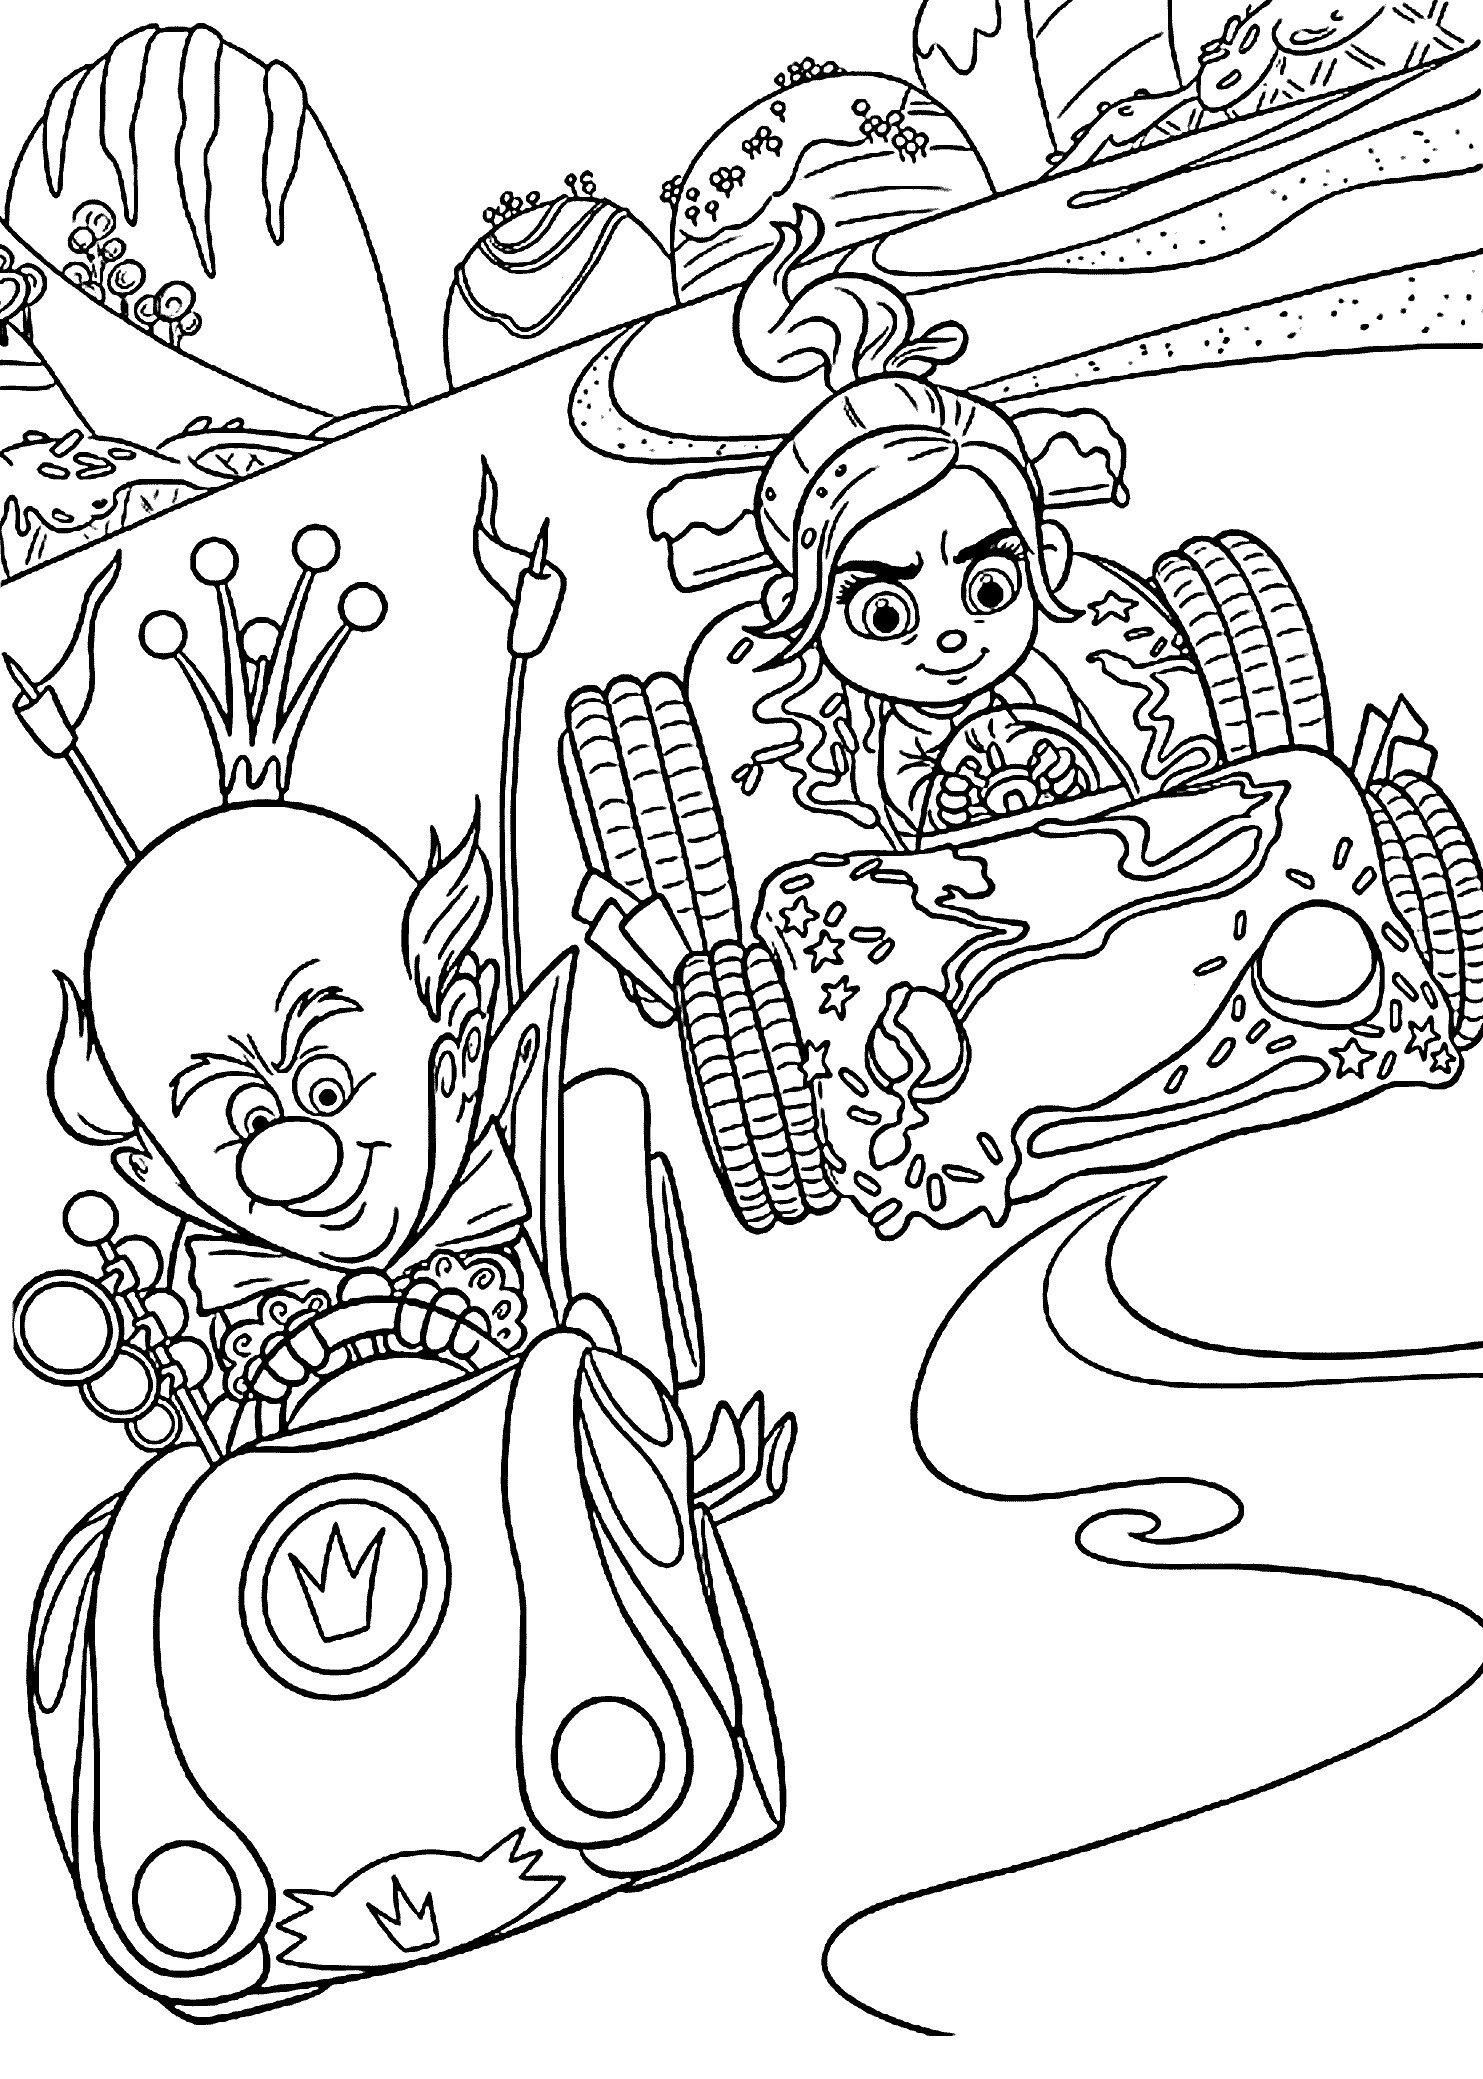 cool kids coloring pages vanellope coloring pages at getcoloringscom free pages coloring cool kids